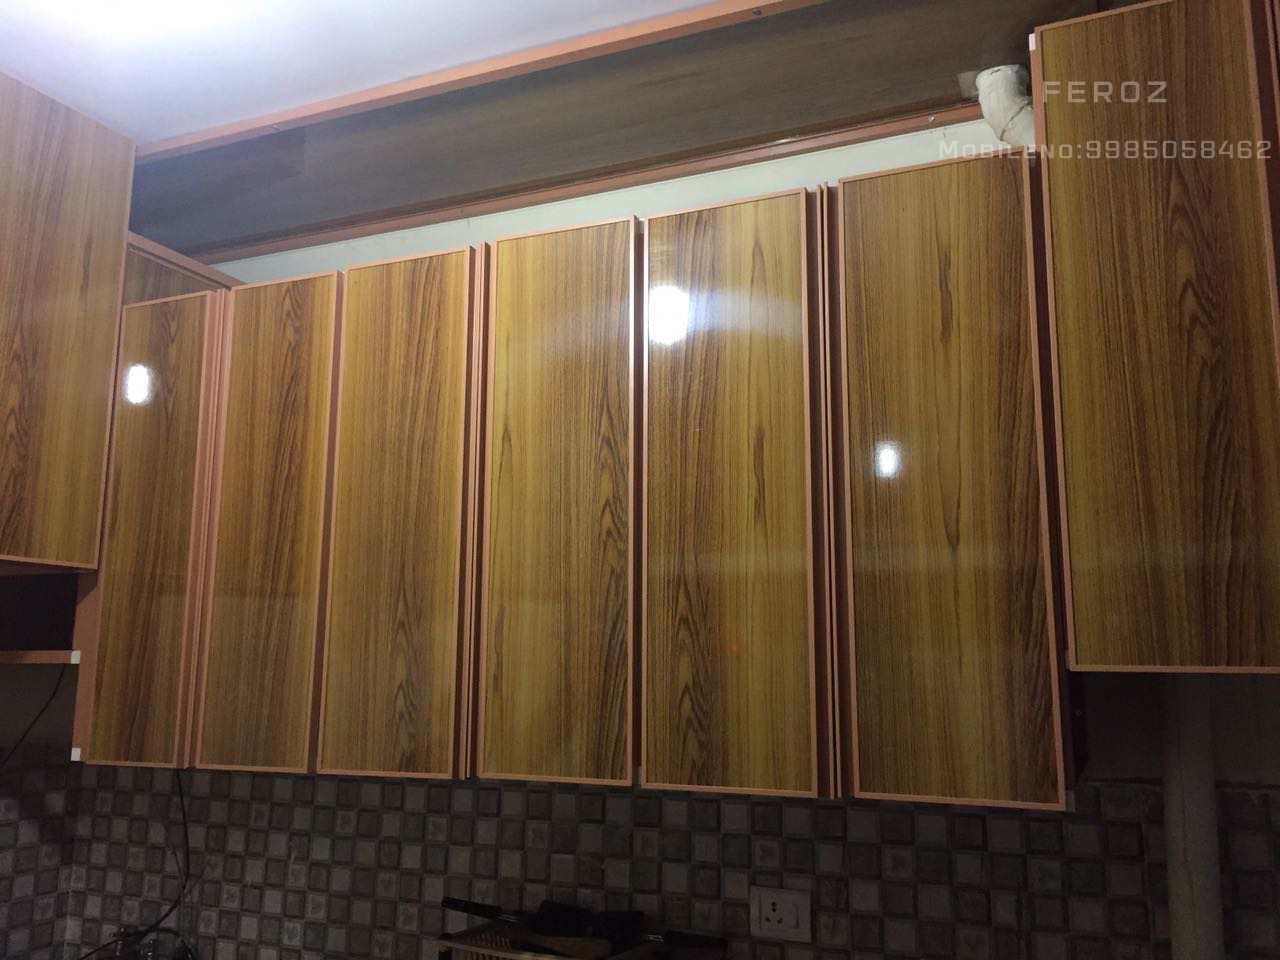 Toughened glass manufacturers suppliers in hyderabad for Aluminium kitchen cabinets hyderabad